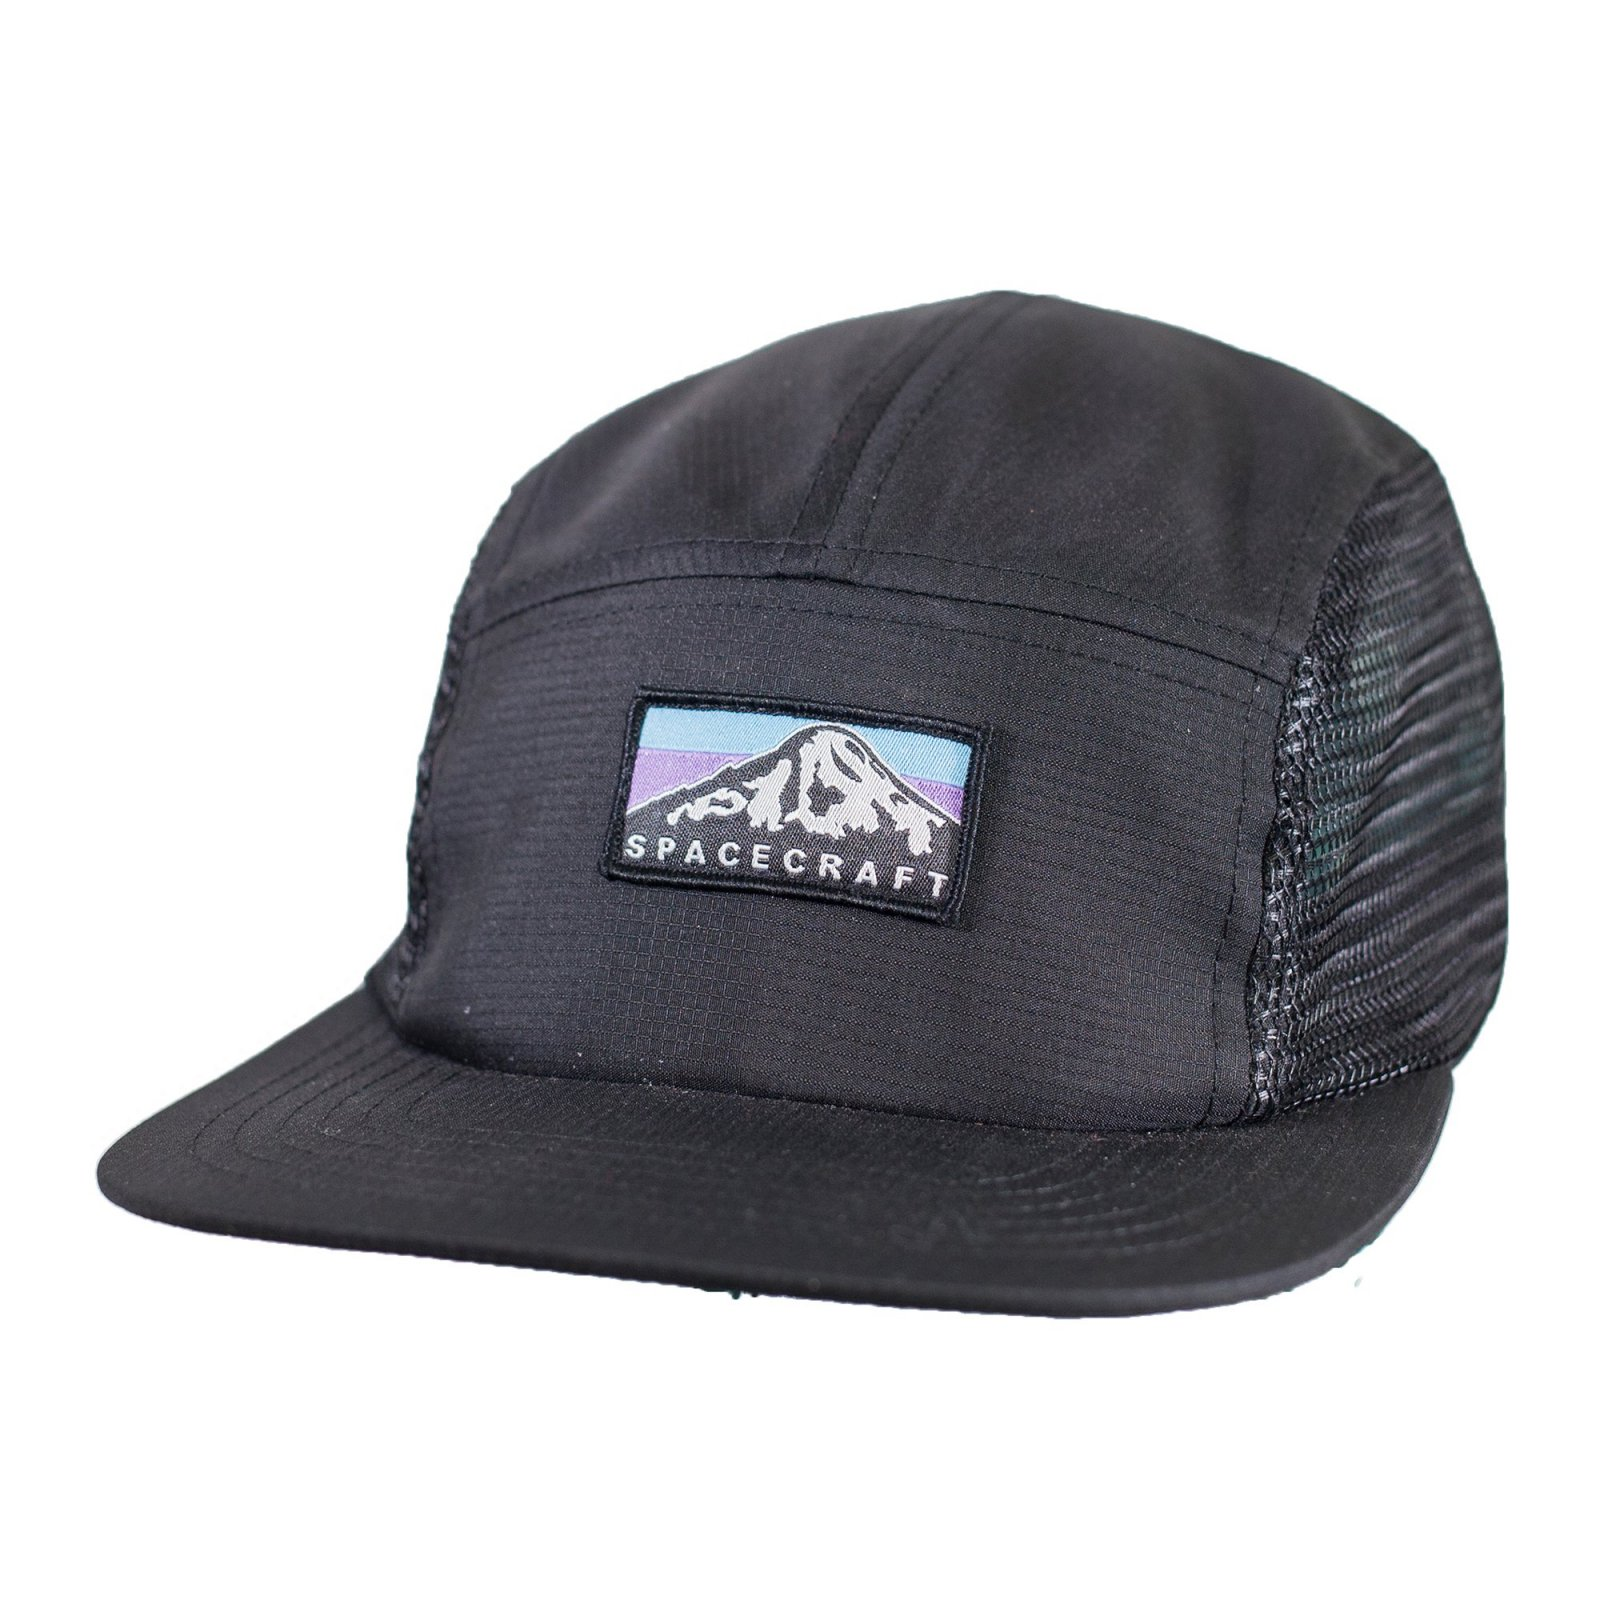 59d6c81c844 Spacecraft Rainier 5 Panel Hat